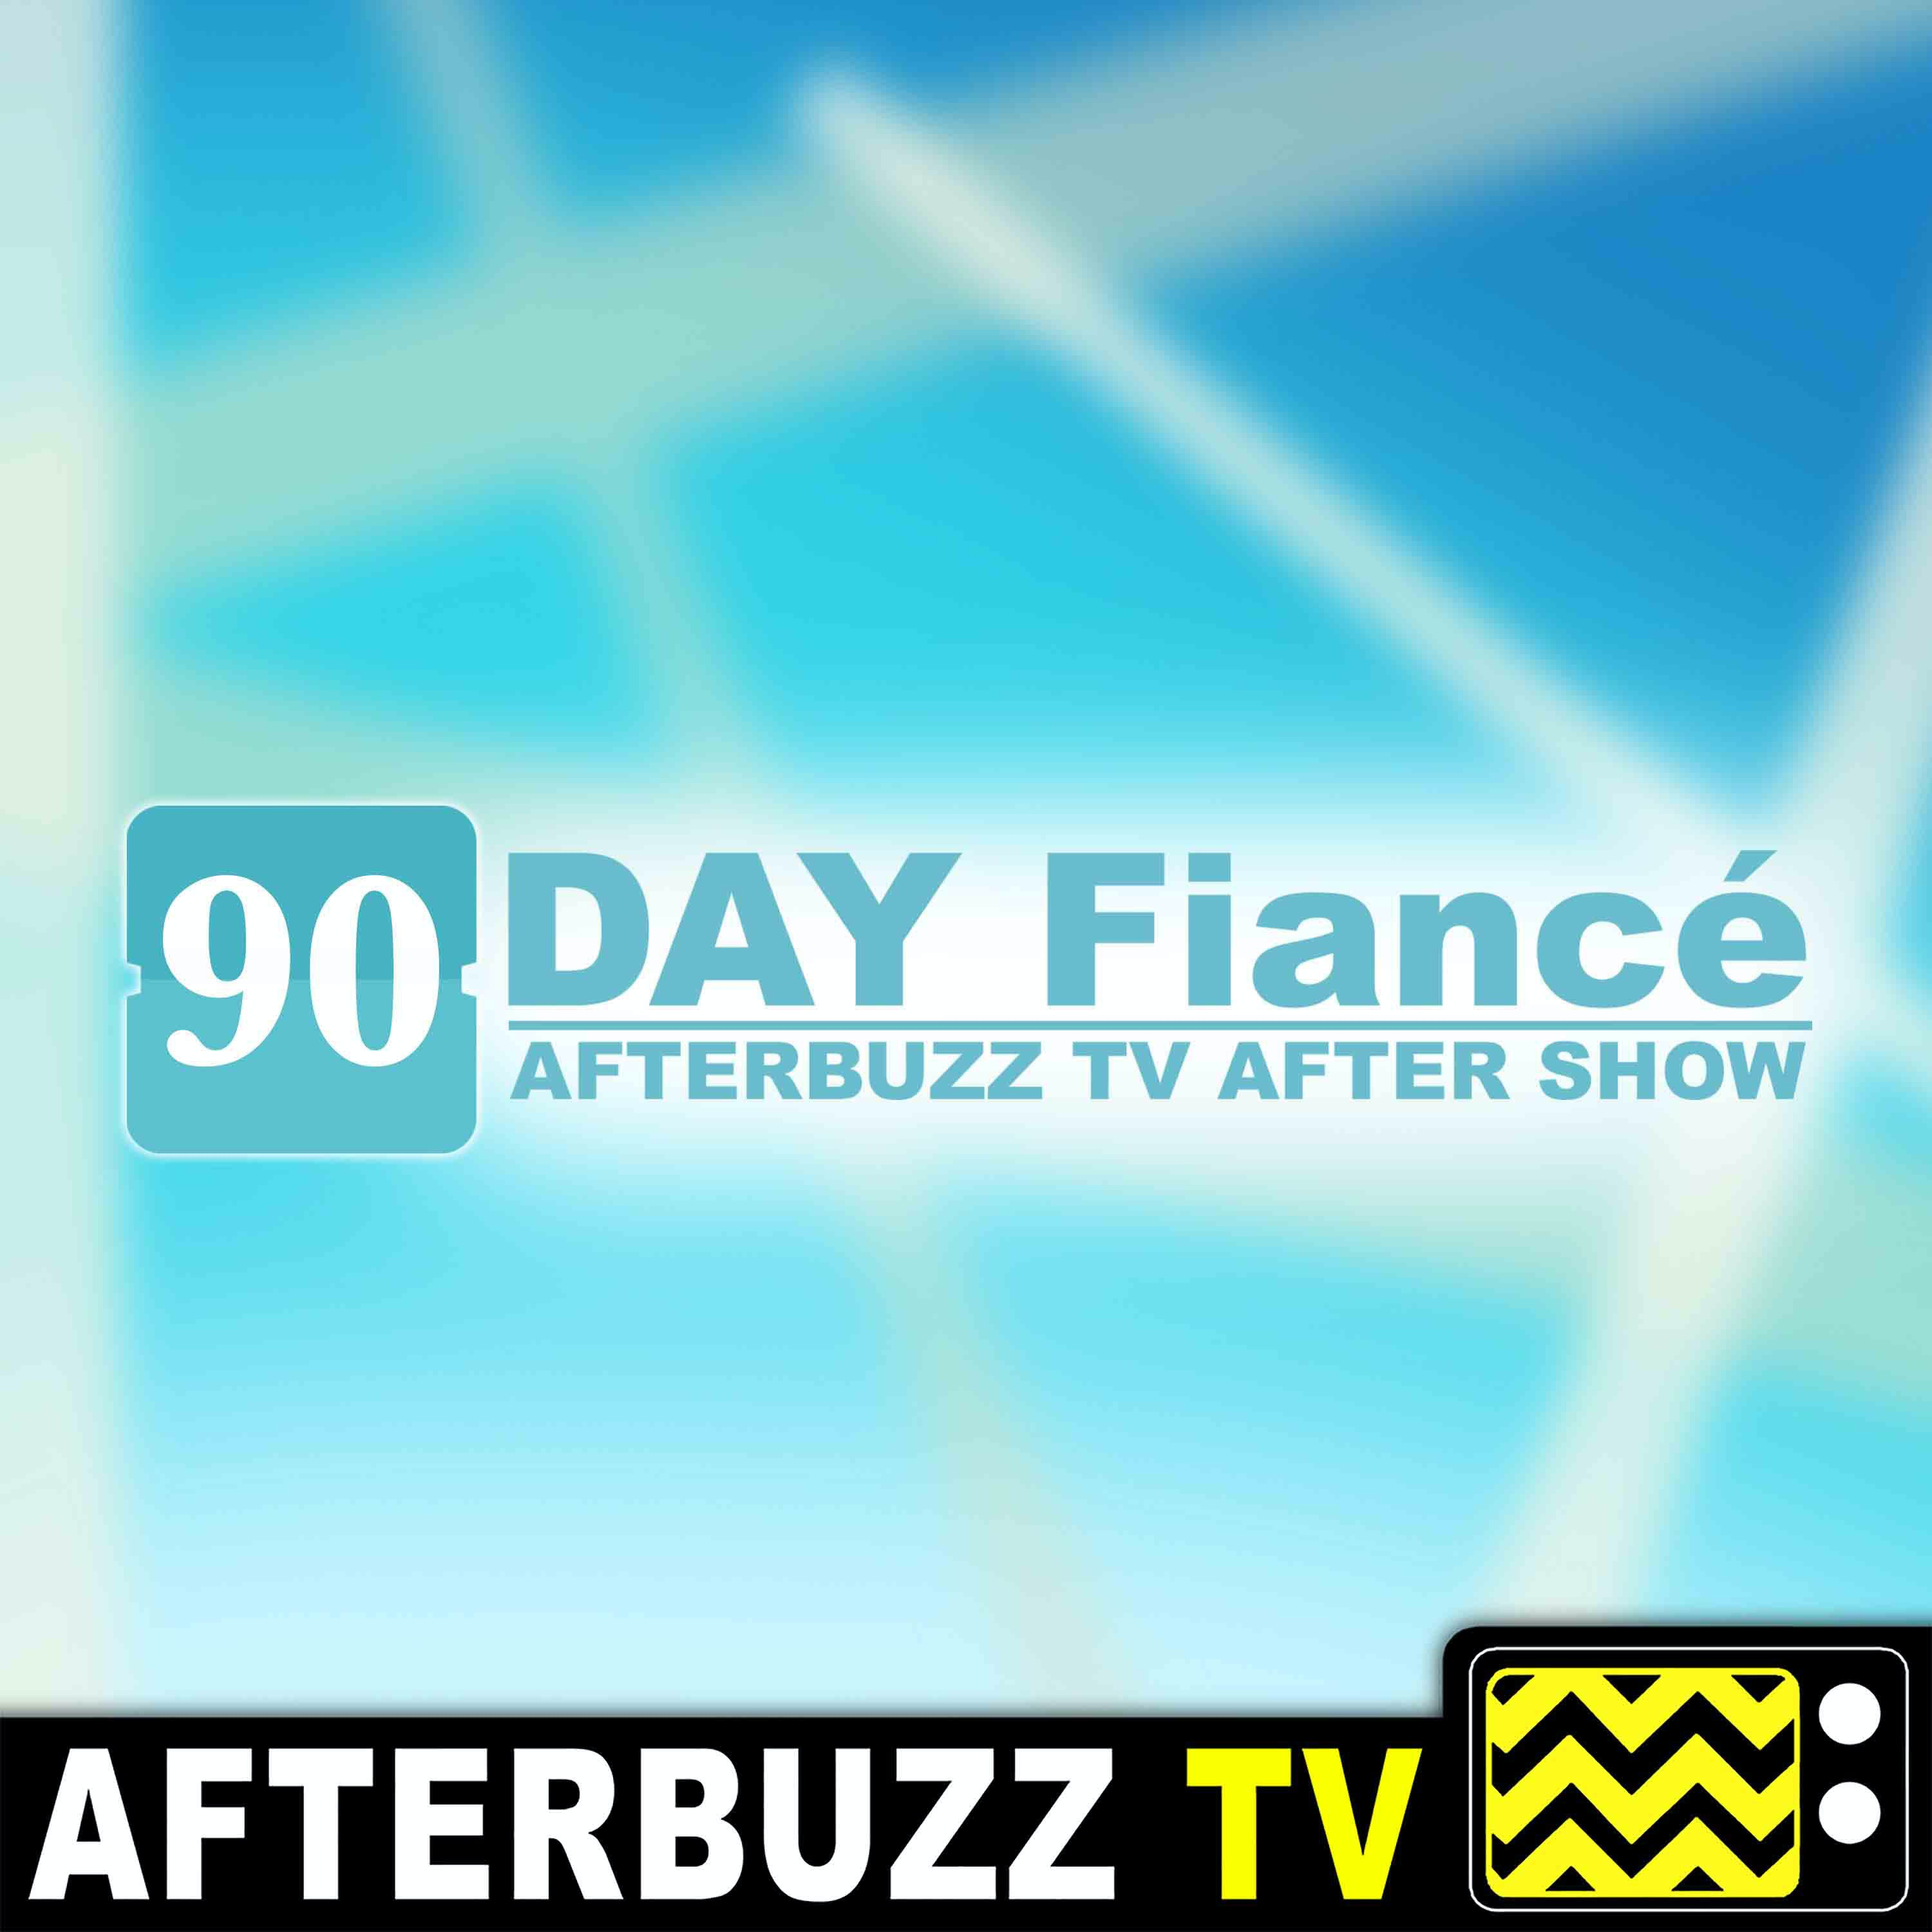 90 Day Fiancé: Before the 90 Days S4 E16 Recap & After Show: Secrets Revealed During The 90 Day Fiancé: Before The 90 Days Tell All!